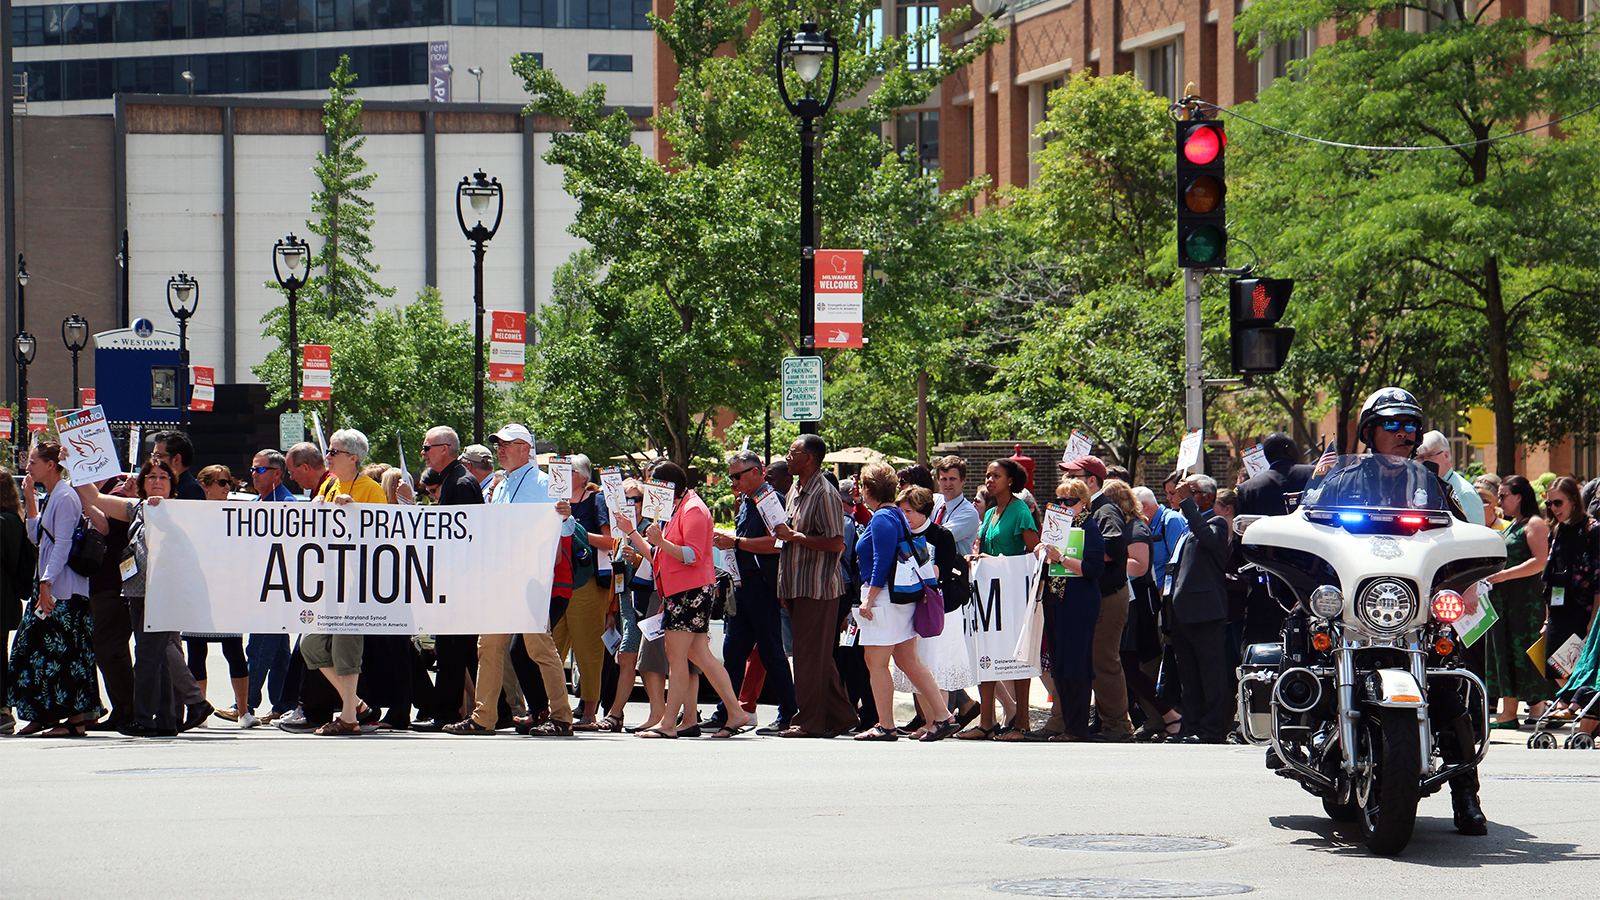 ELCA declares self a 'sanctuary church body,' marches to ICE building in Milwaukee - Religion News Service